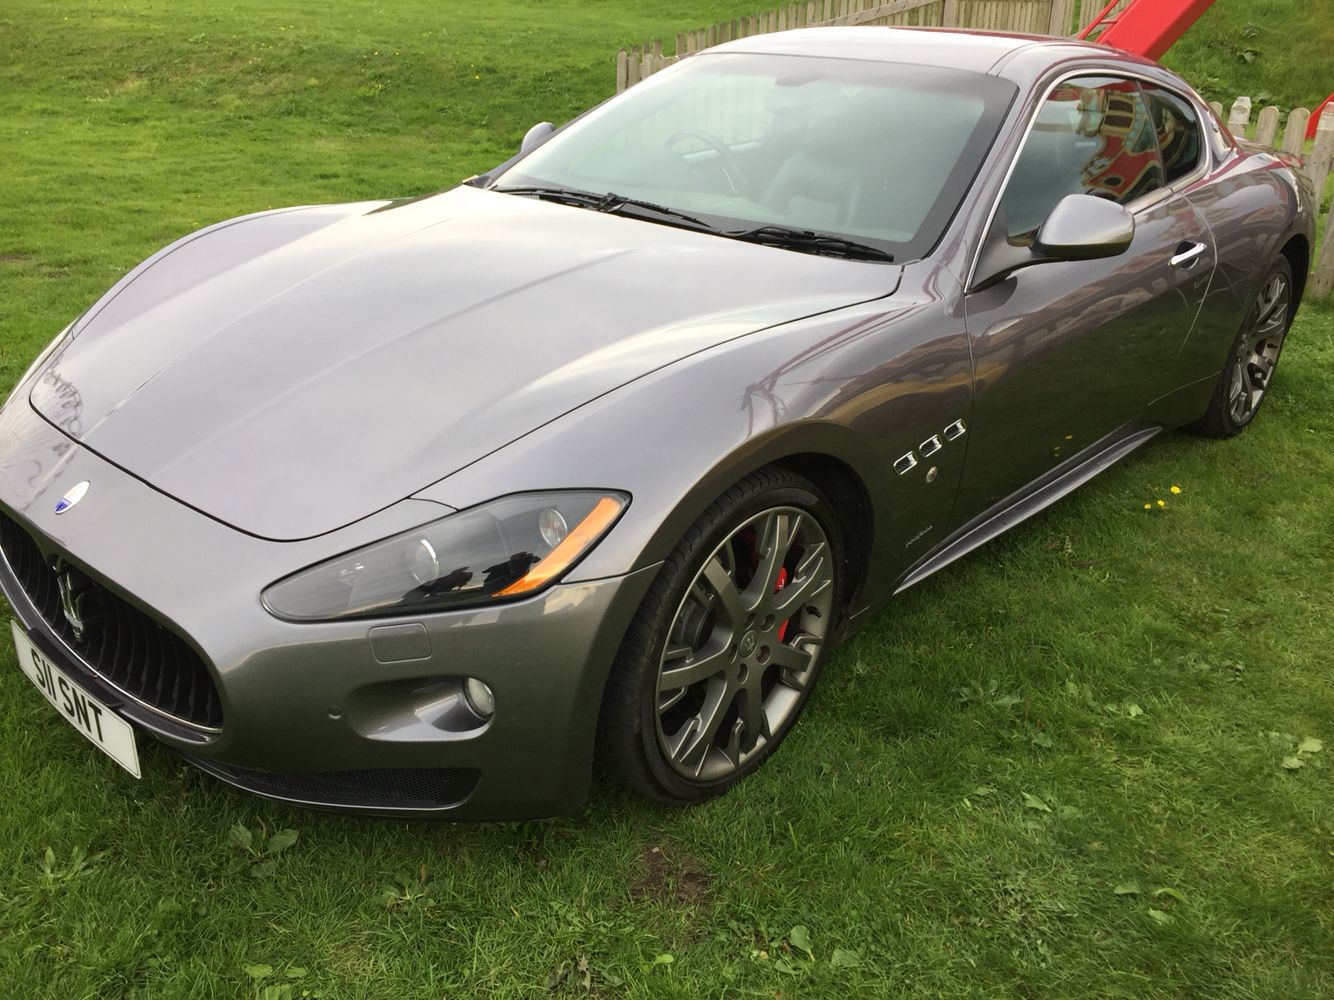 For #Maserati news & other Italian cars check out Enzari com